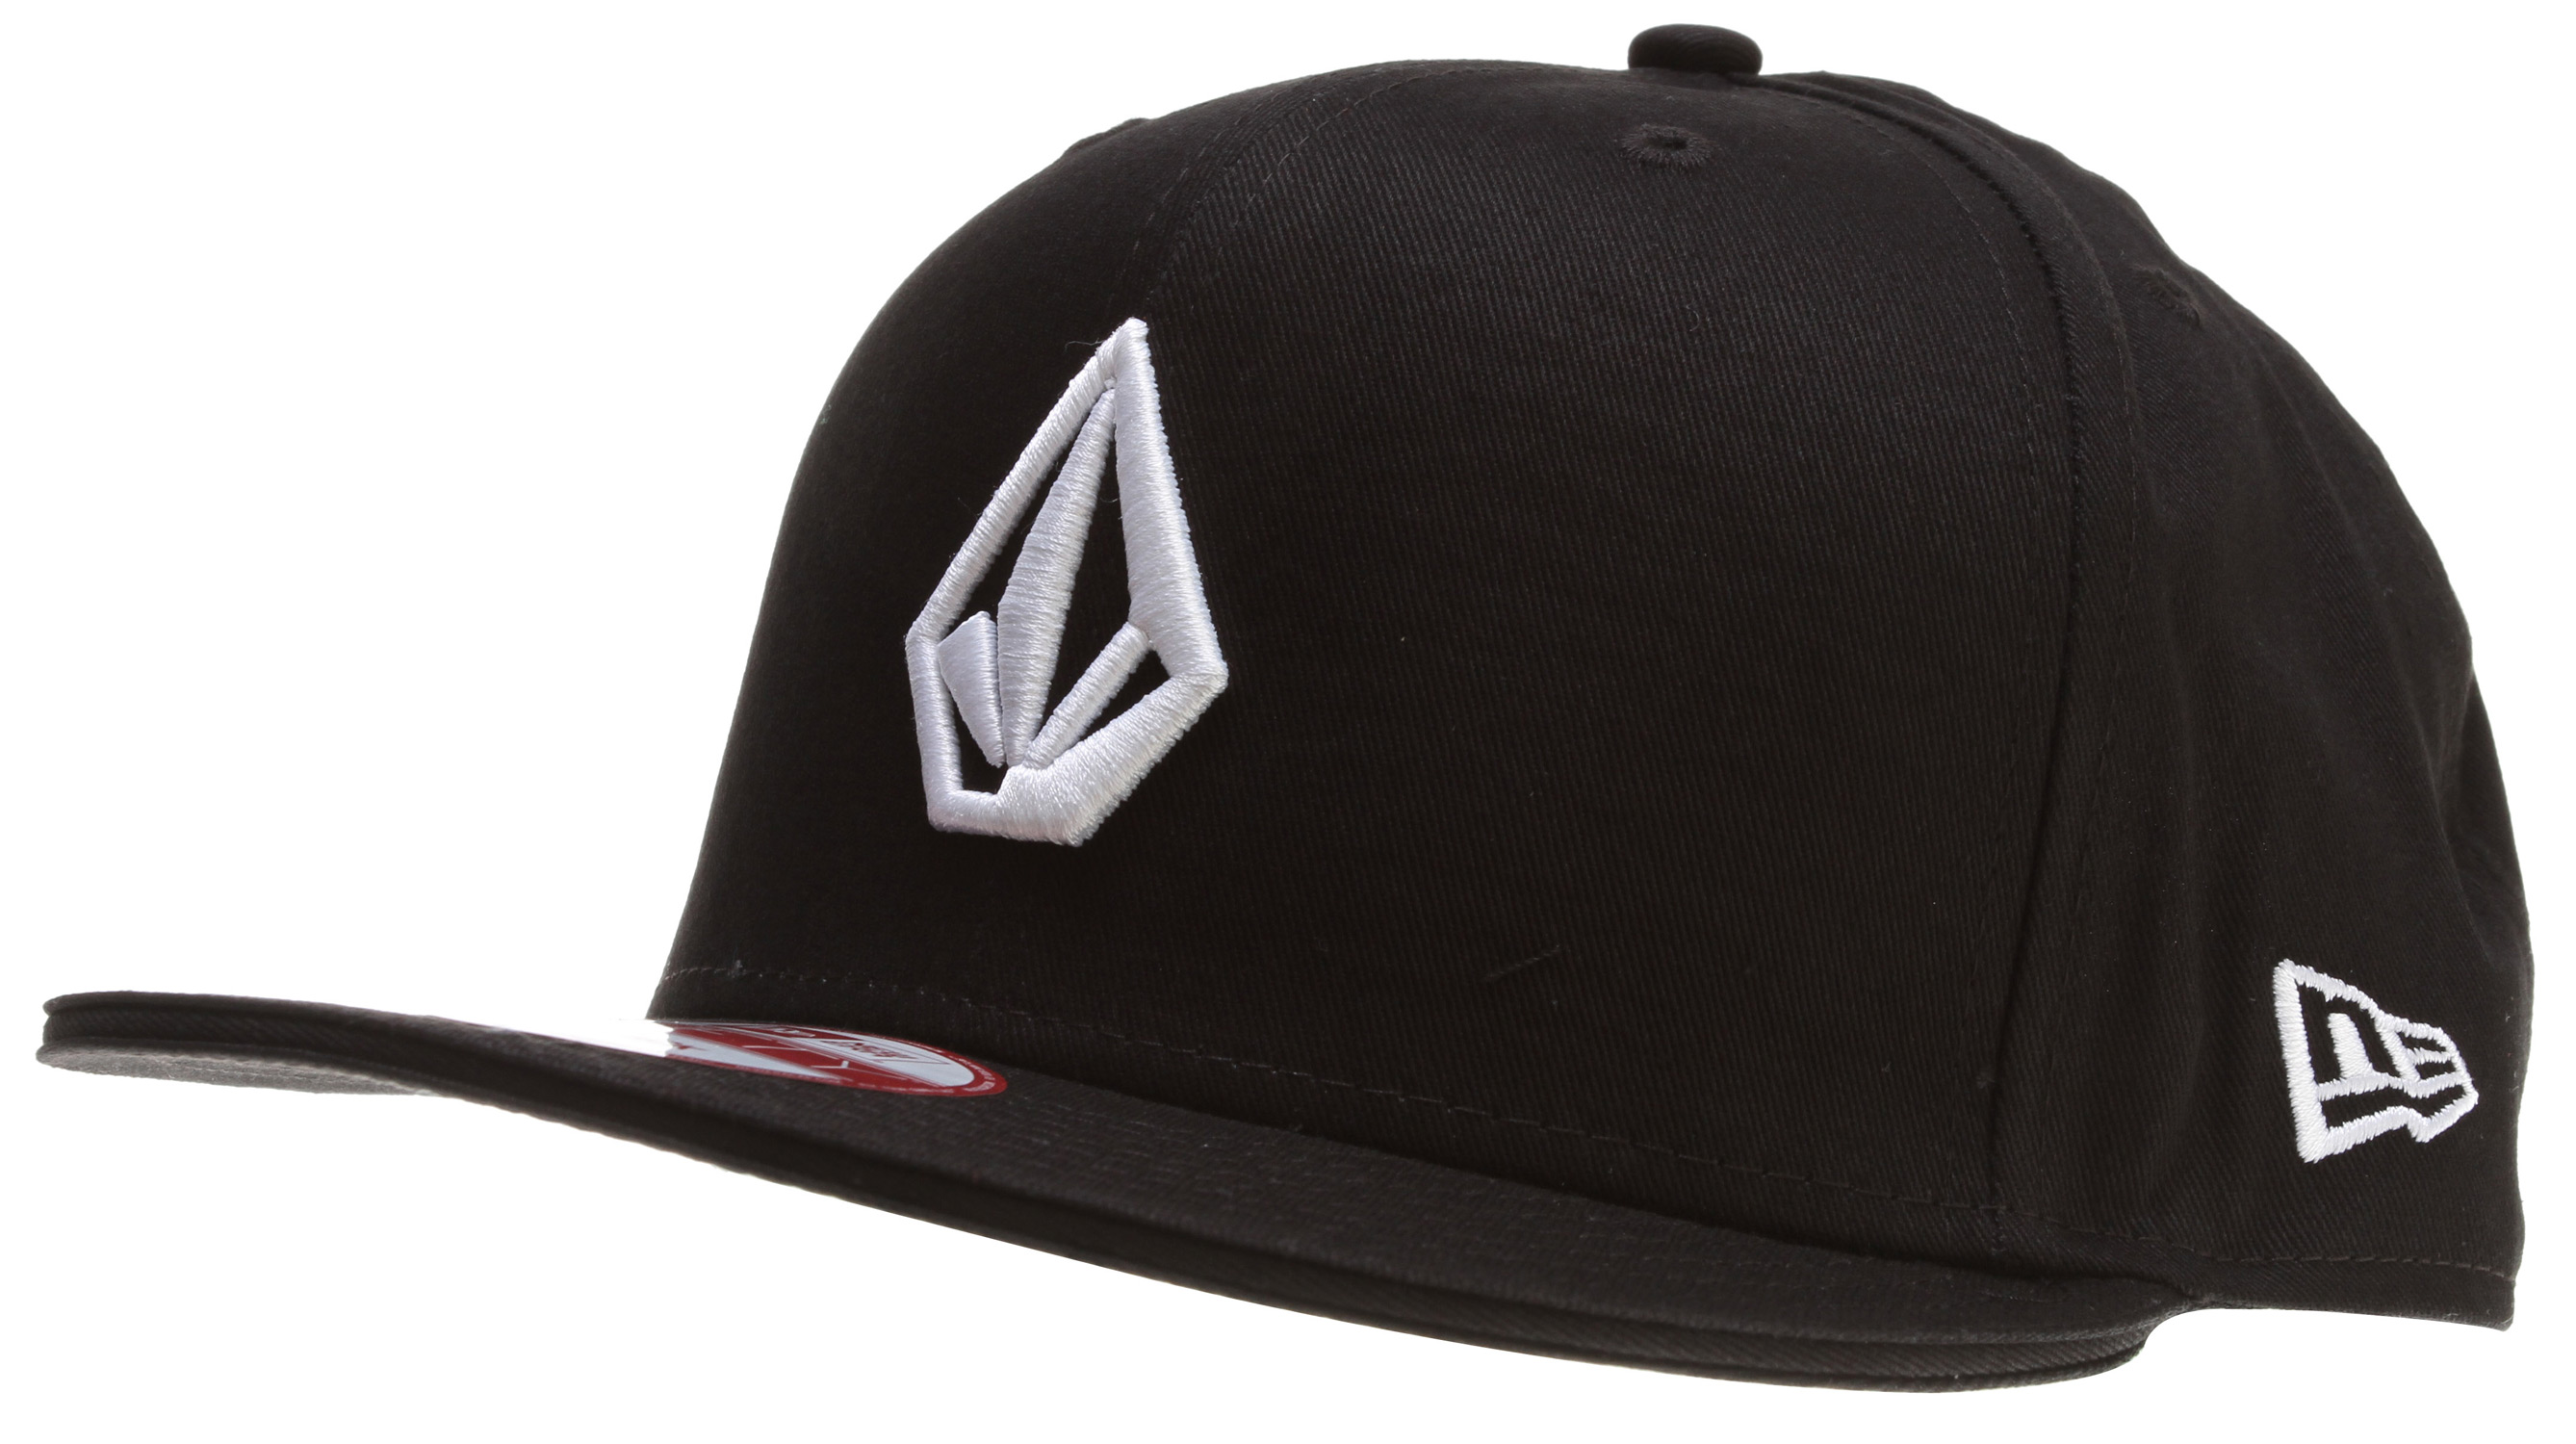 Surf Key Features of the Volcom NE Full Stone 9Fifty Cap: Signature adjustable hat from New Era™ High block structured crown 8 rows of visor stitching One size fits all - $26.00